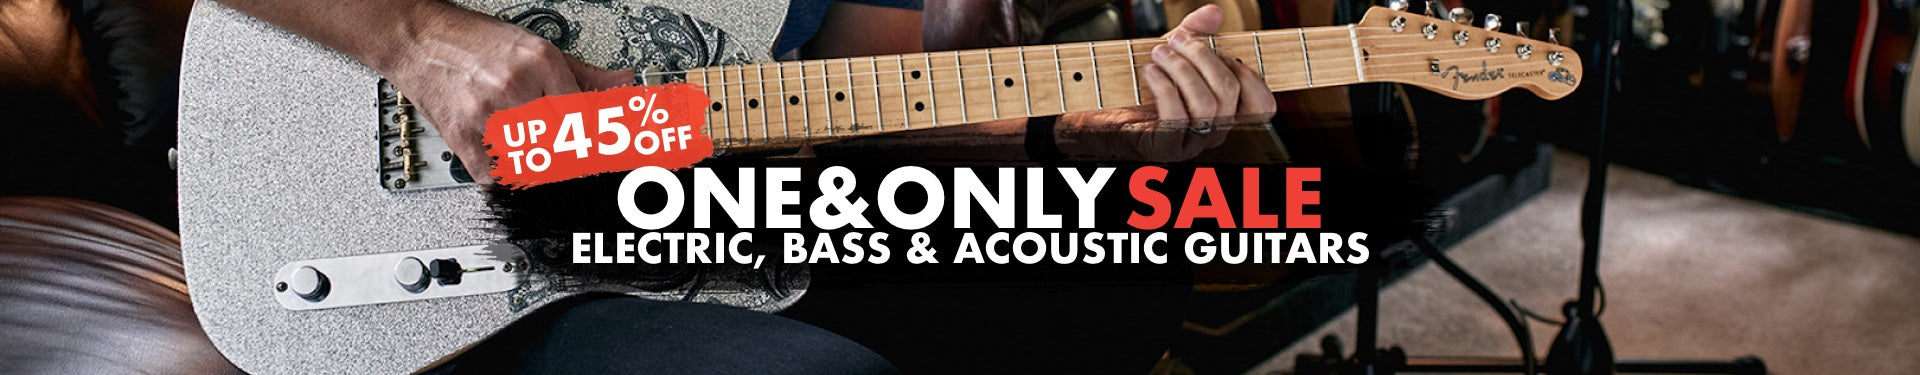 One & Only Guitar Sale